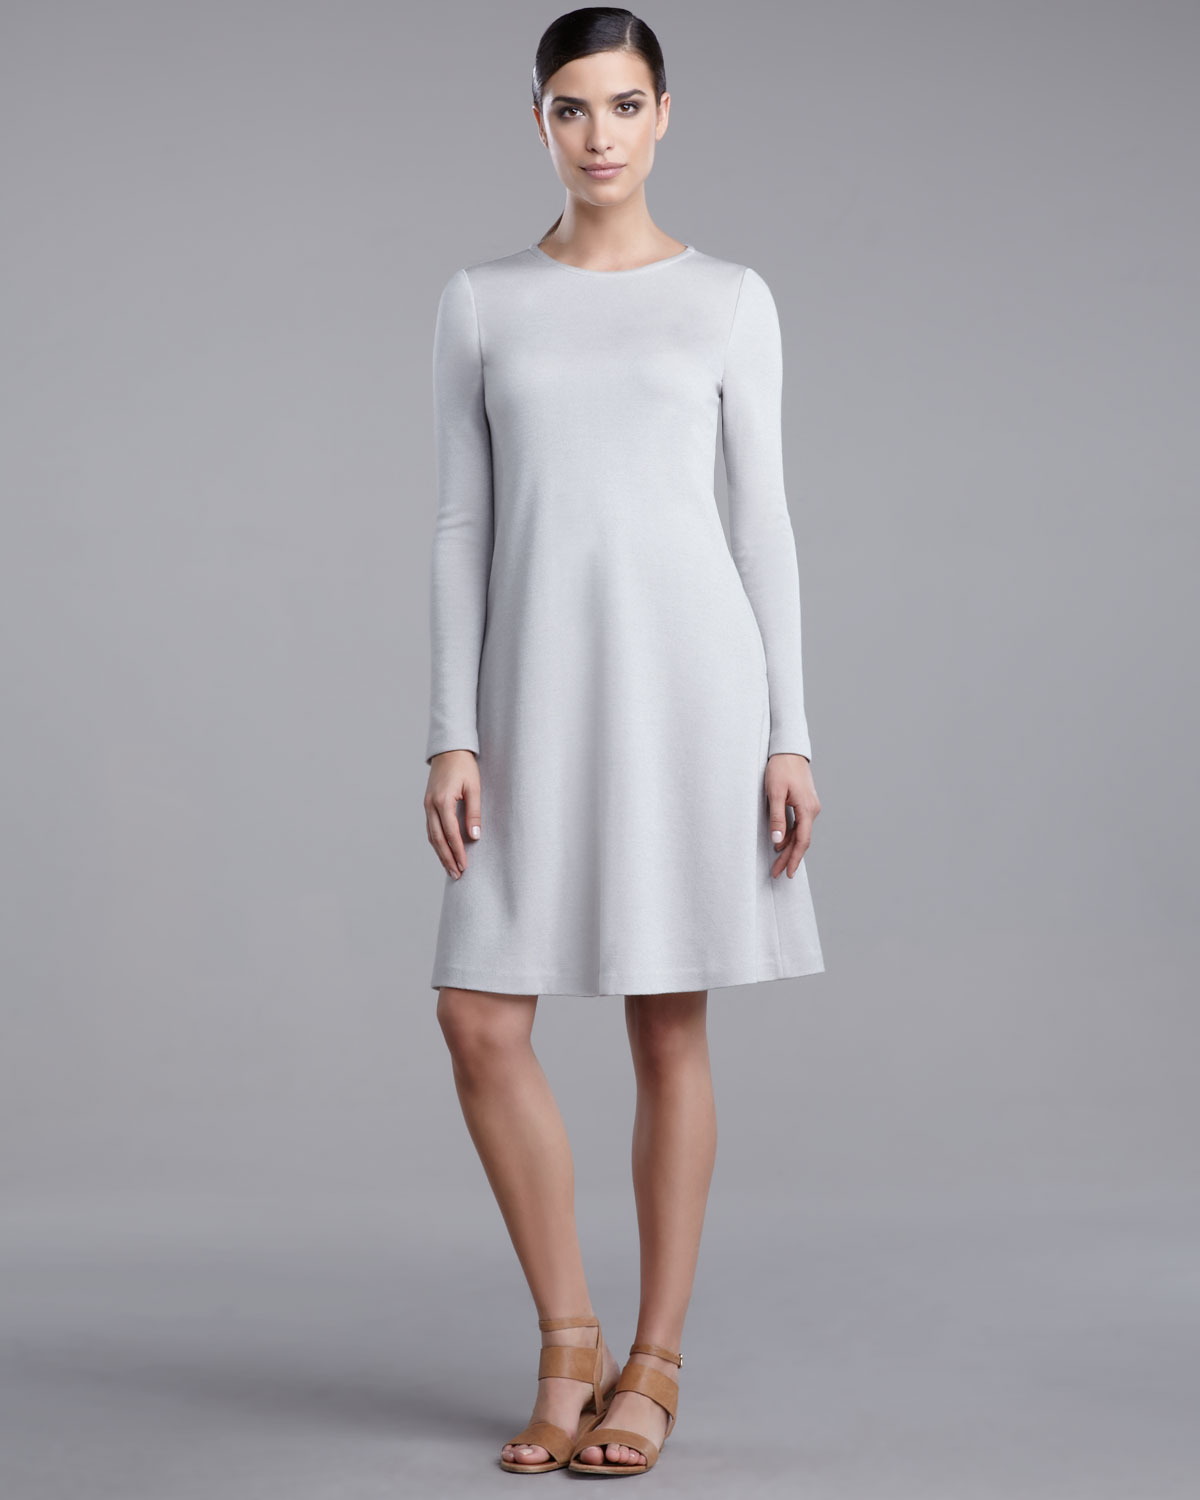 fd8f79ad0 St. John Milano Trapeze Dress in White - Lyst